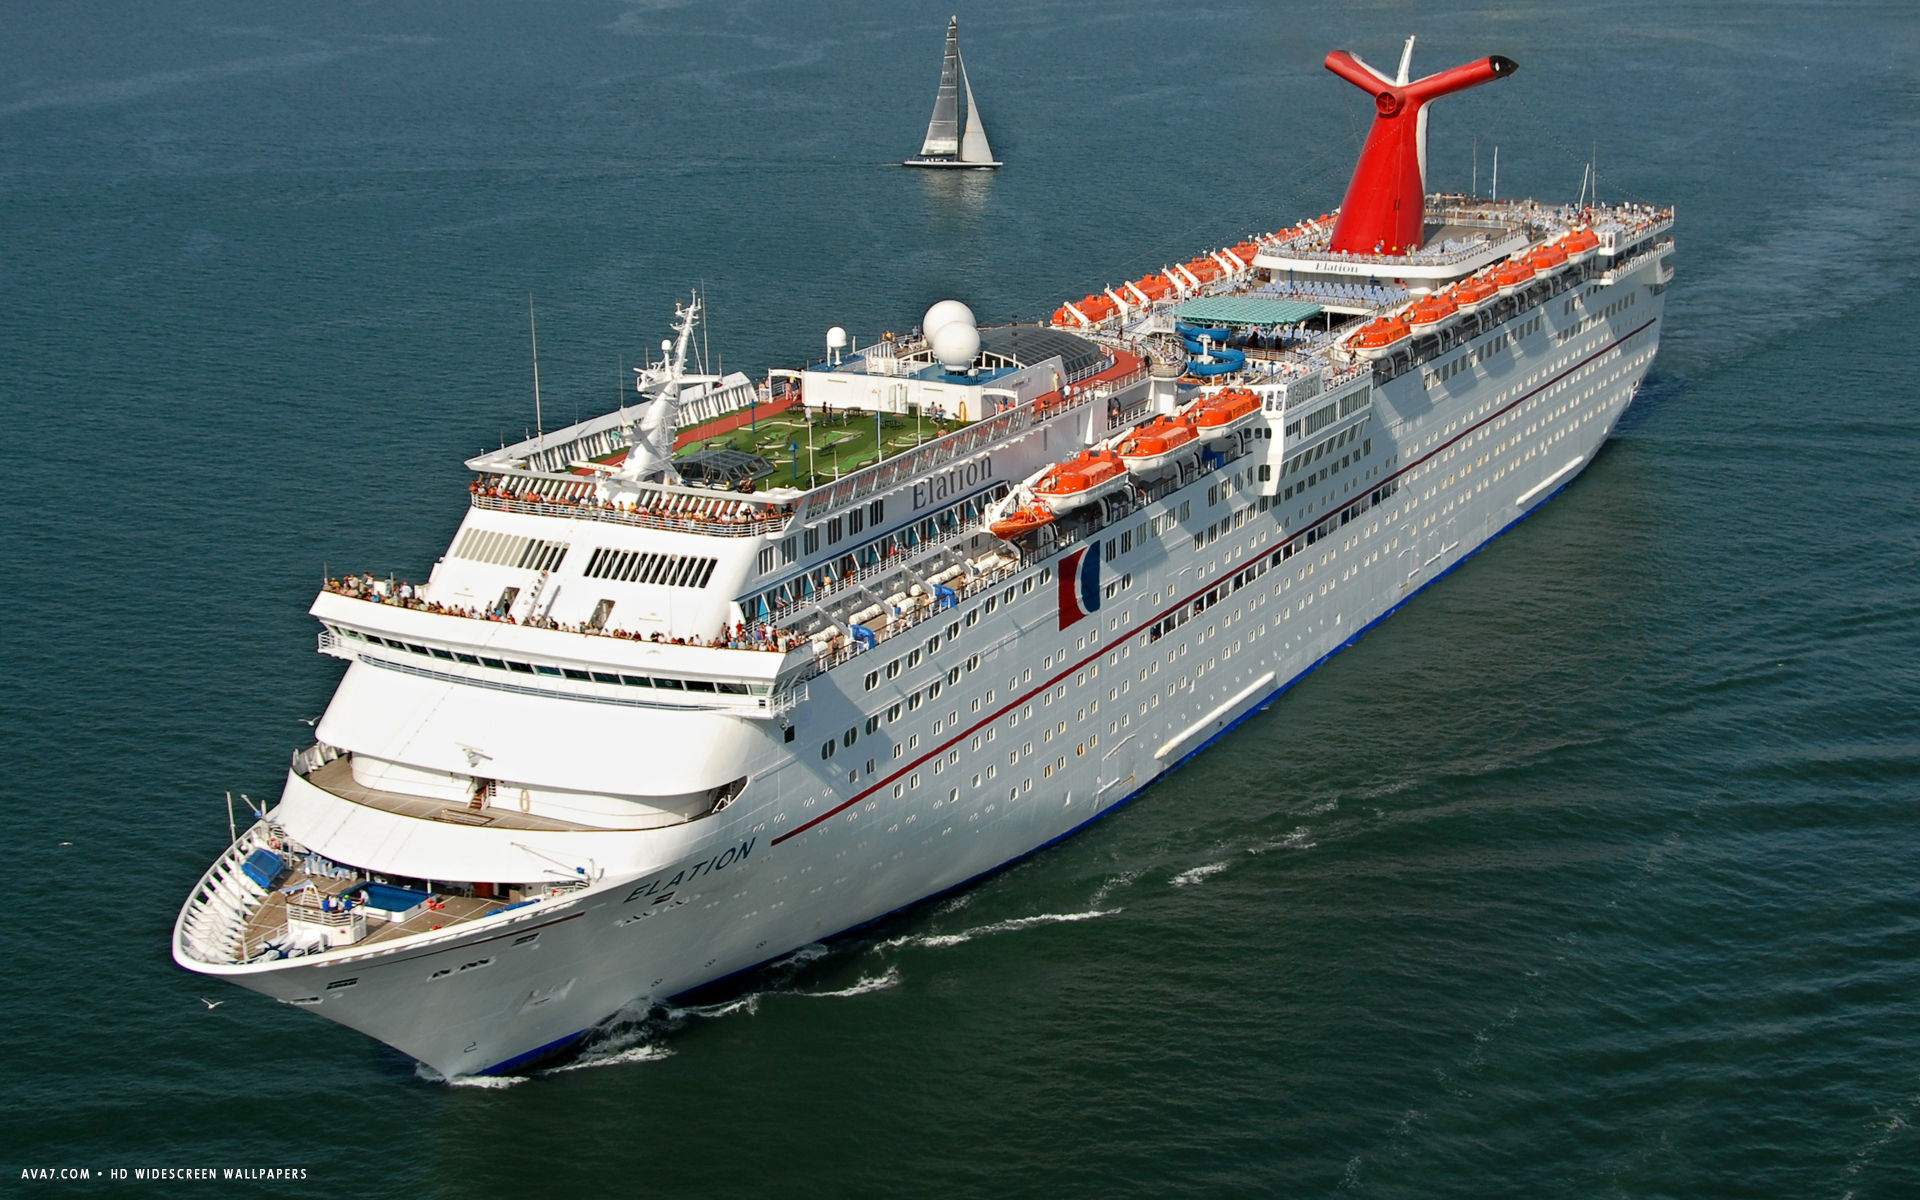 carnival elation cruise ship hd widescreen wallpaper